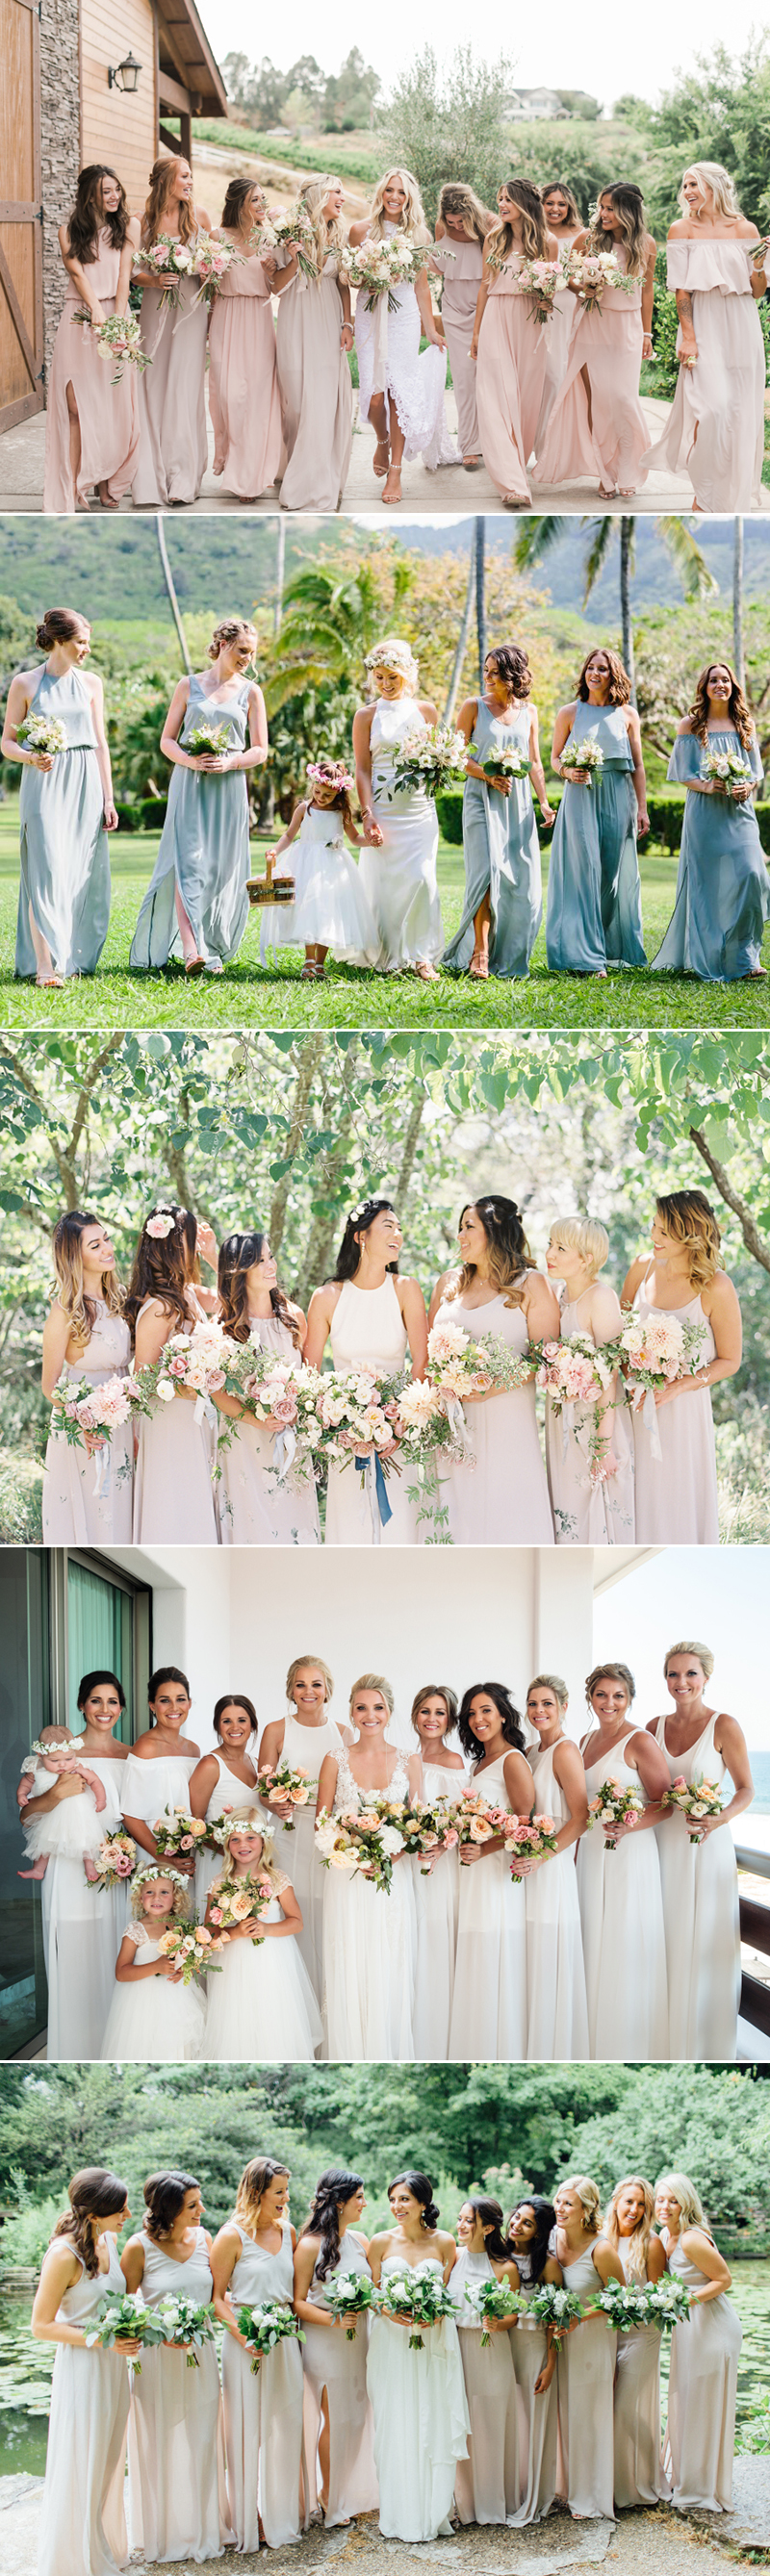 9b81323a7b 5 Best Places To Buy Bridesmaid Dresses Online! - Praise Wedding